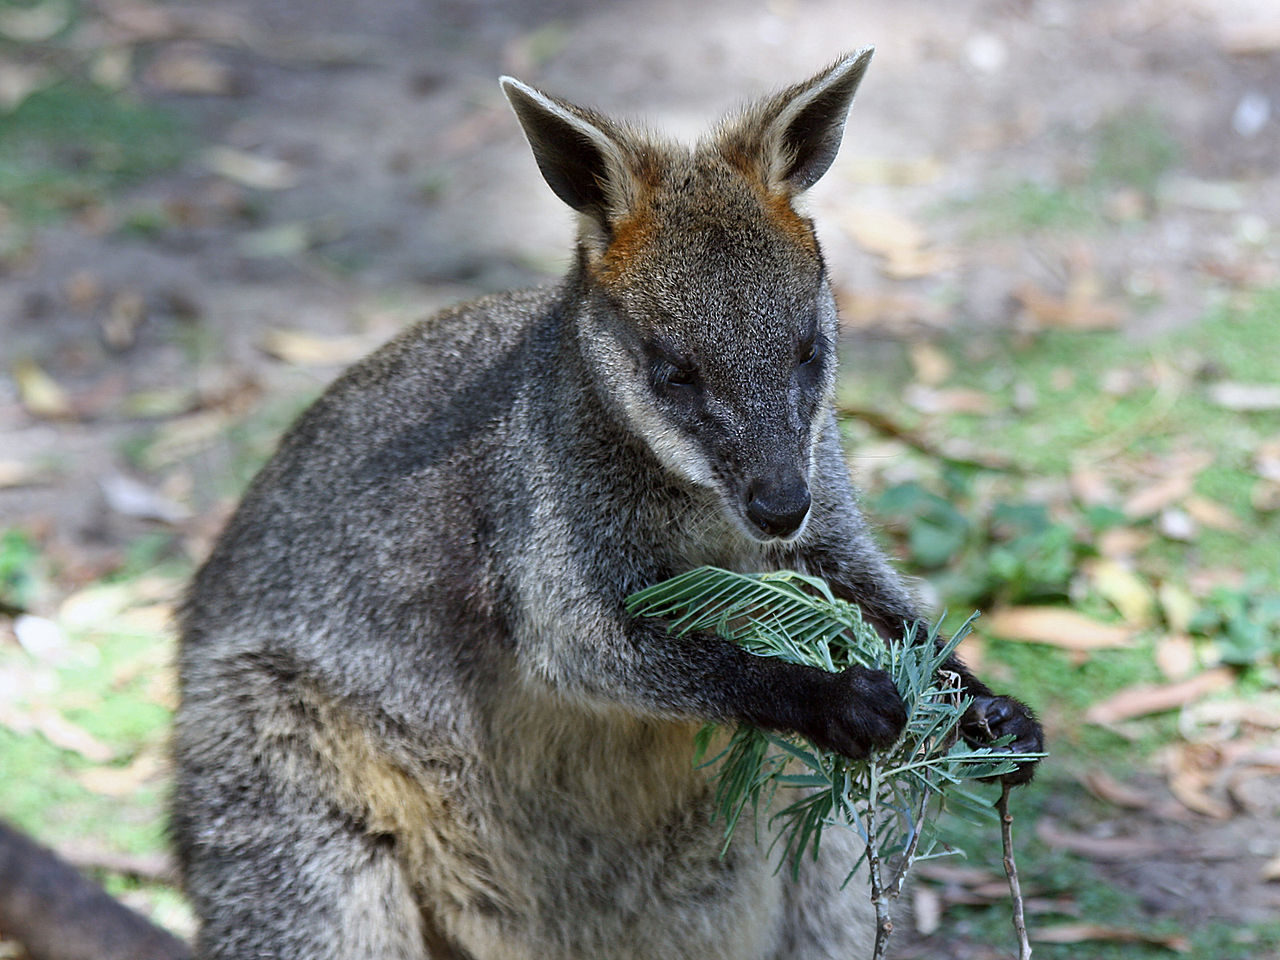 To Find A Tasty Snack Swamp Wallabies Follow Their Noses Scimex